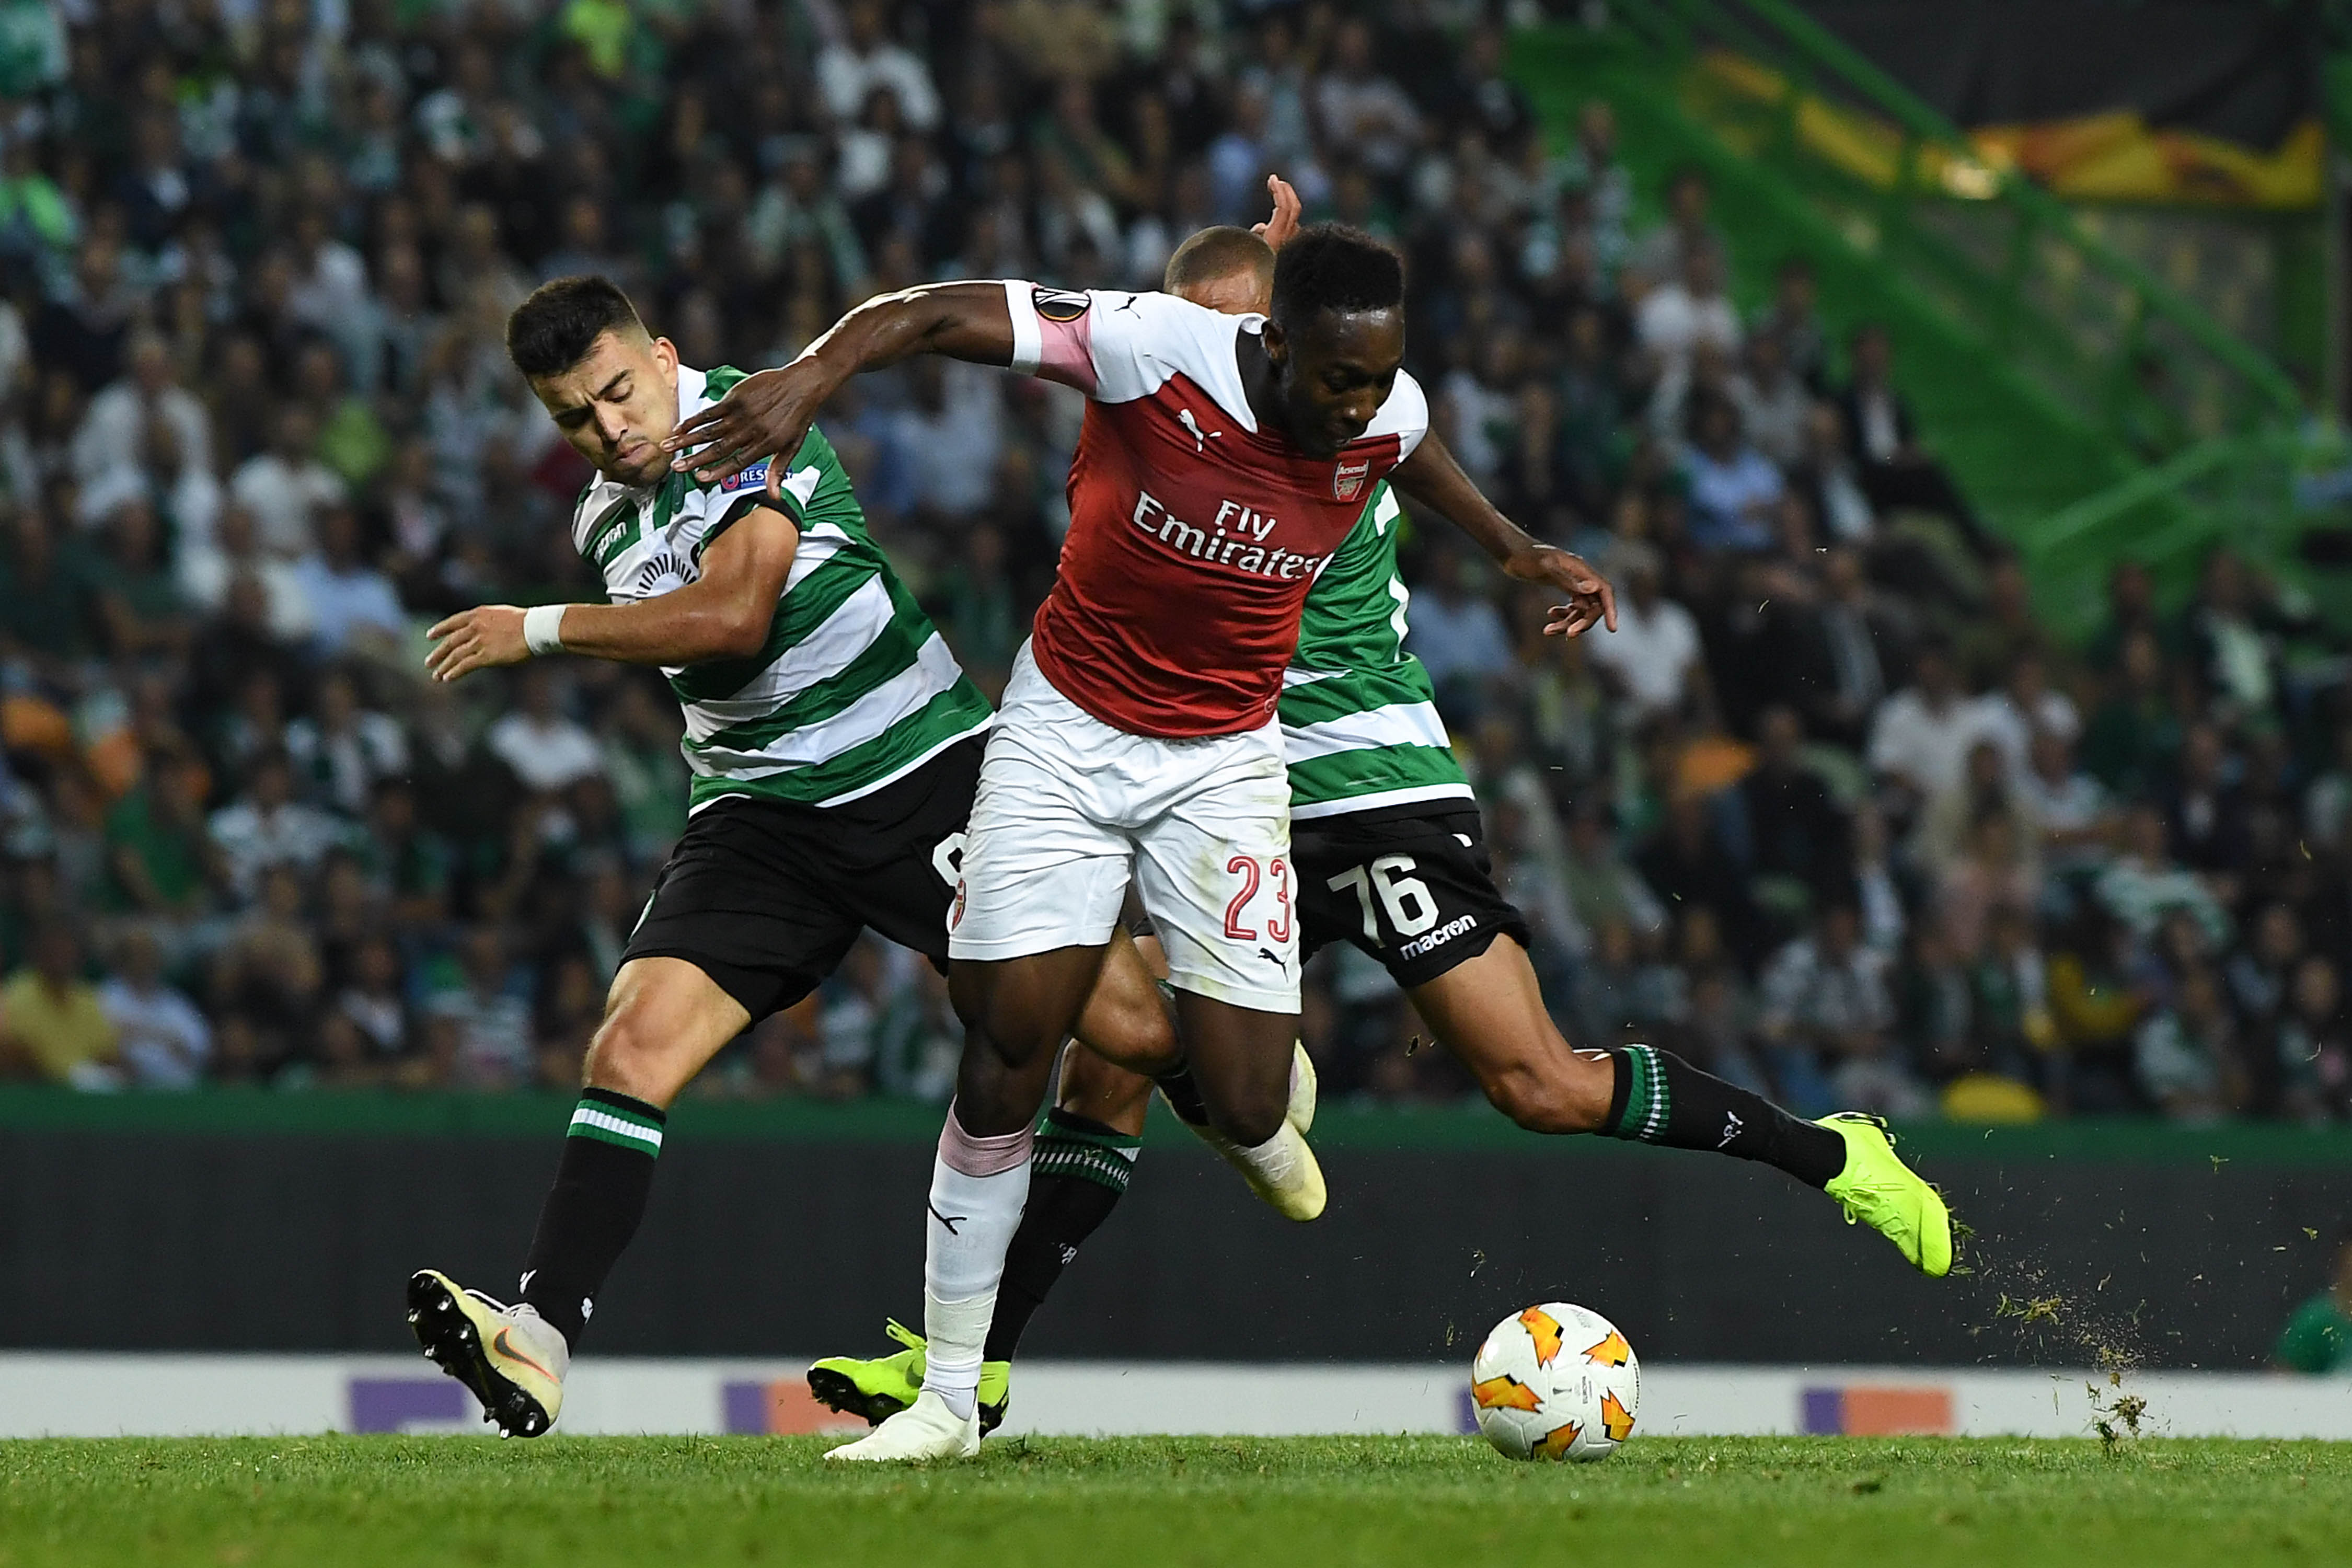 Will Arsenal ended up missing Welbeck when he leaves? (Photo courtesy: AFP/Getty)